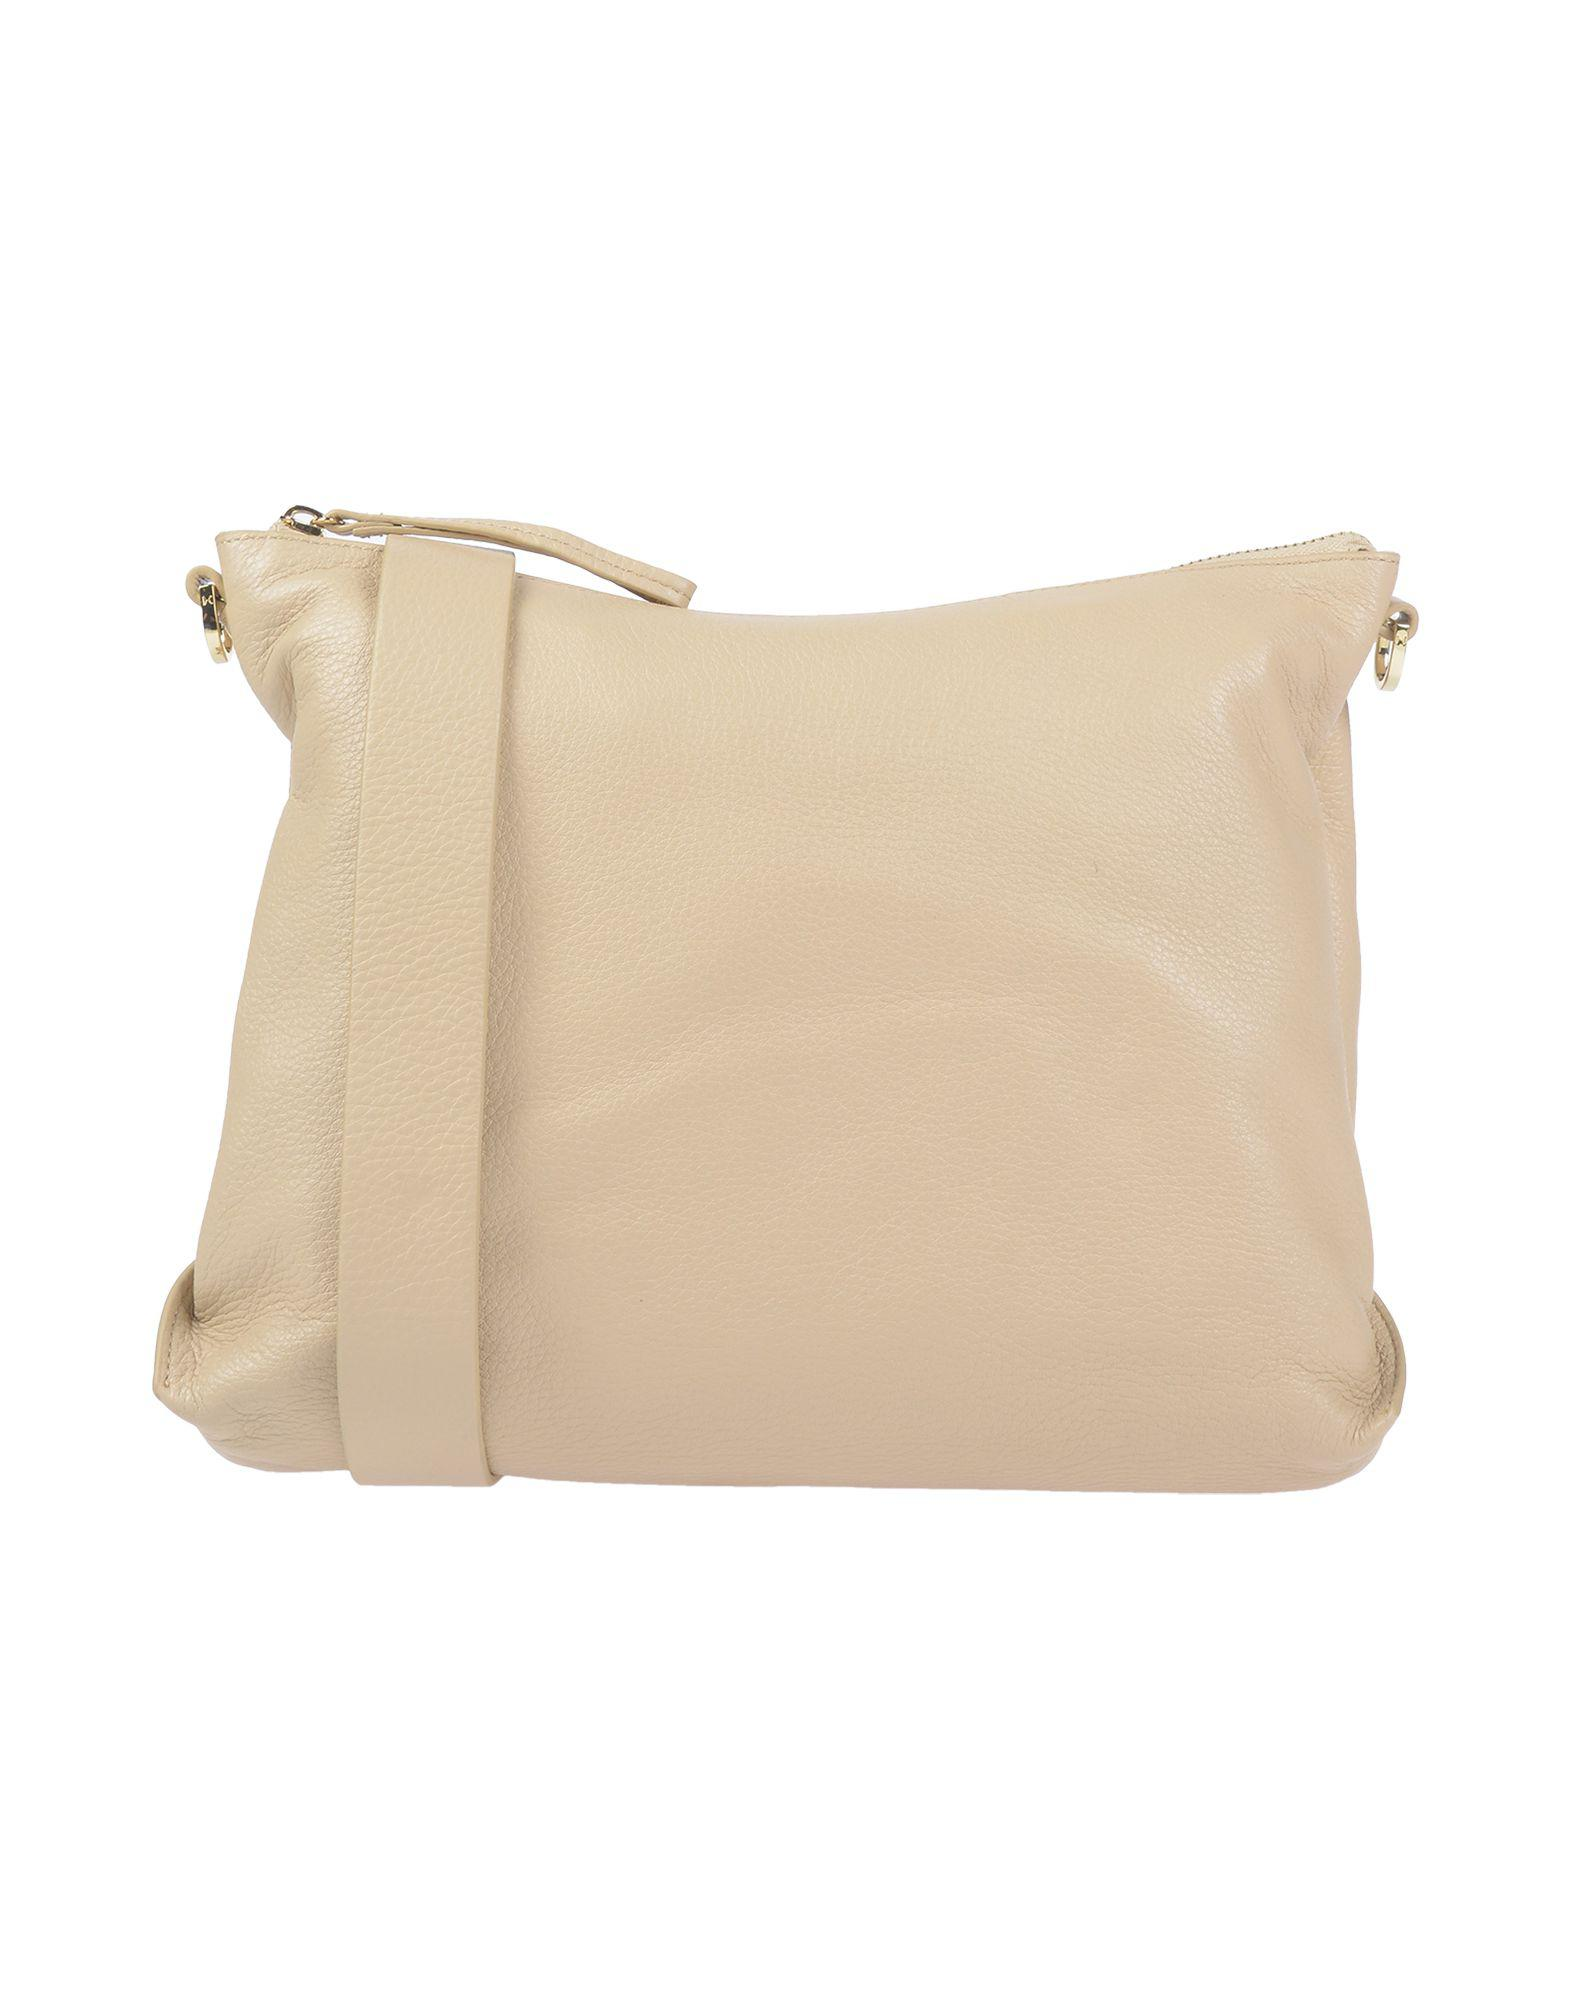 Lyst - Halston Heritage Cross-body Bag in Natural ed3aaab9c0